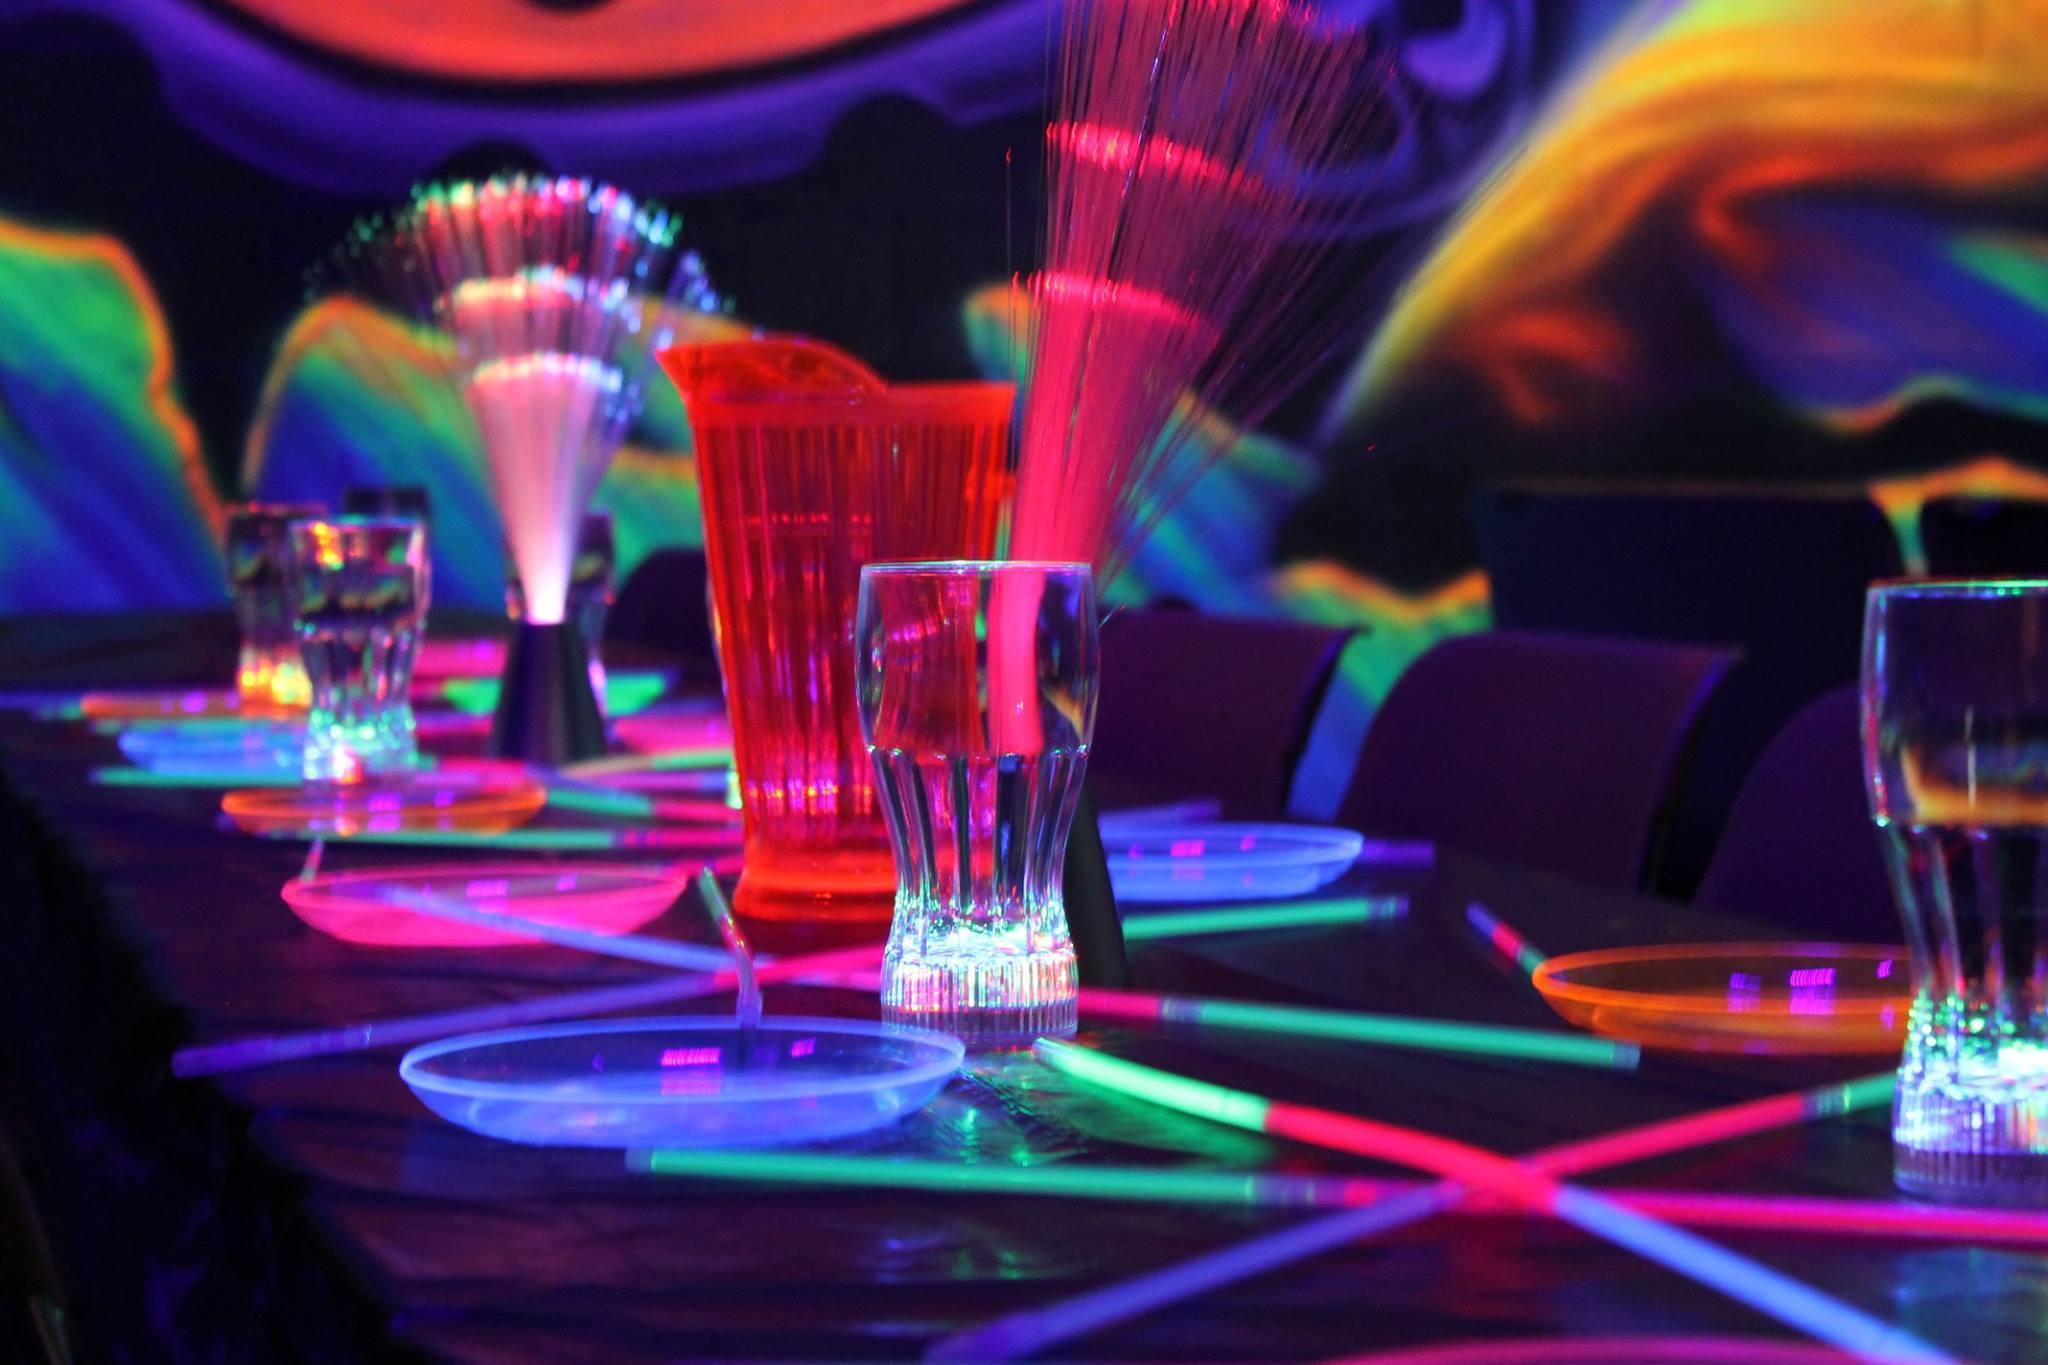 Sparkles family fun centers kennesaw ga 30144 for Party entertainment ideas for adults